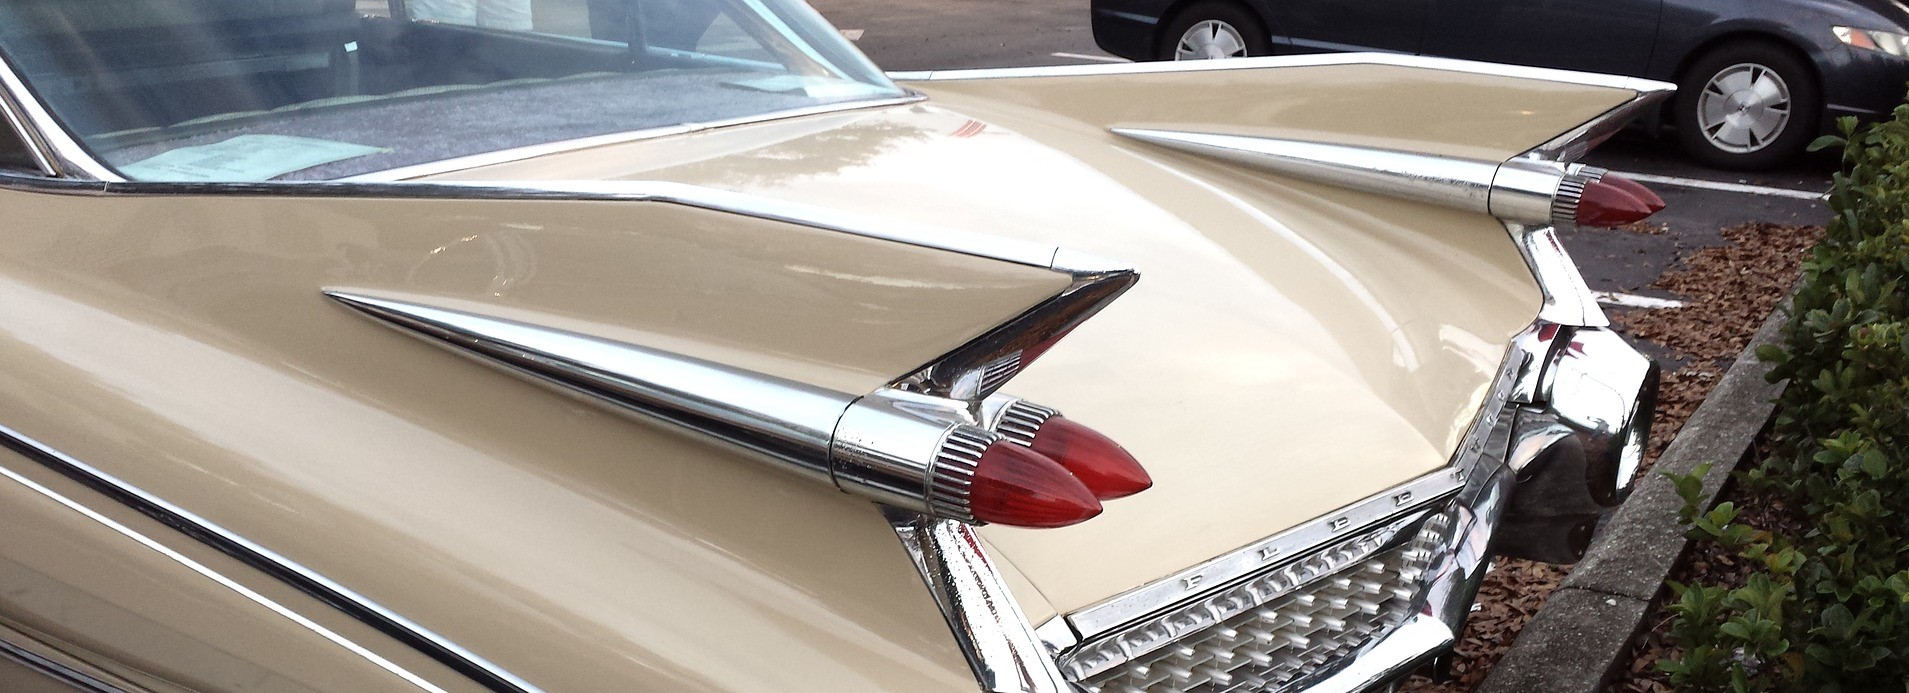 Oldtimer Car in Mount Airy, Maryland   Breast Cancer Car Donations